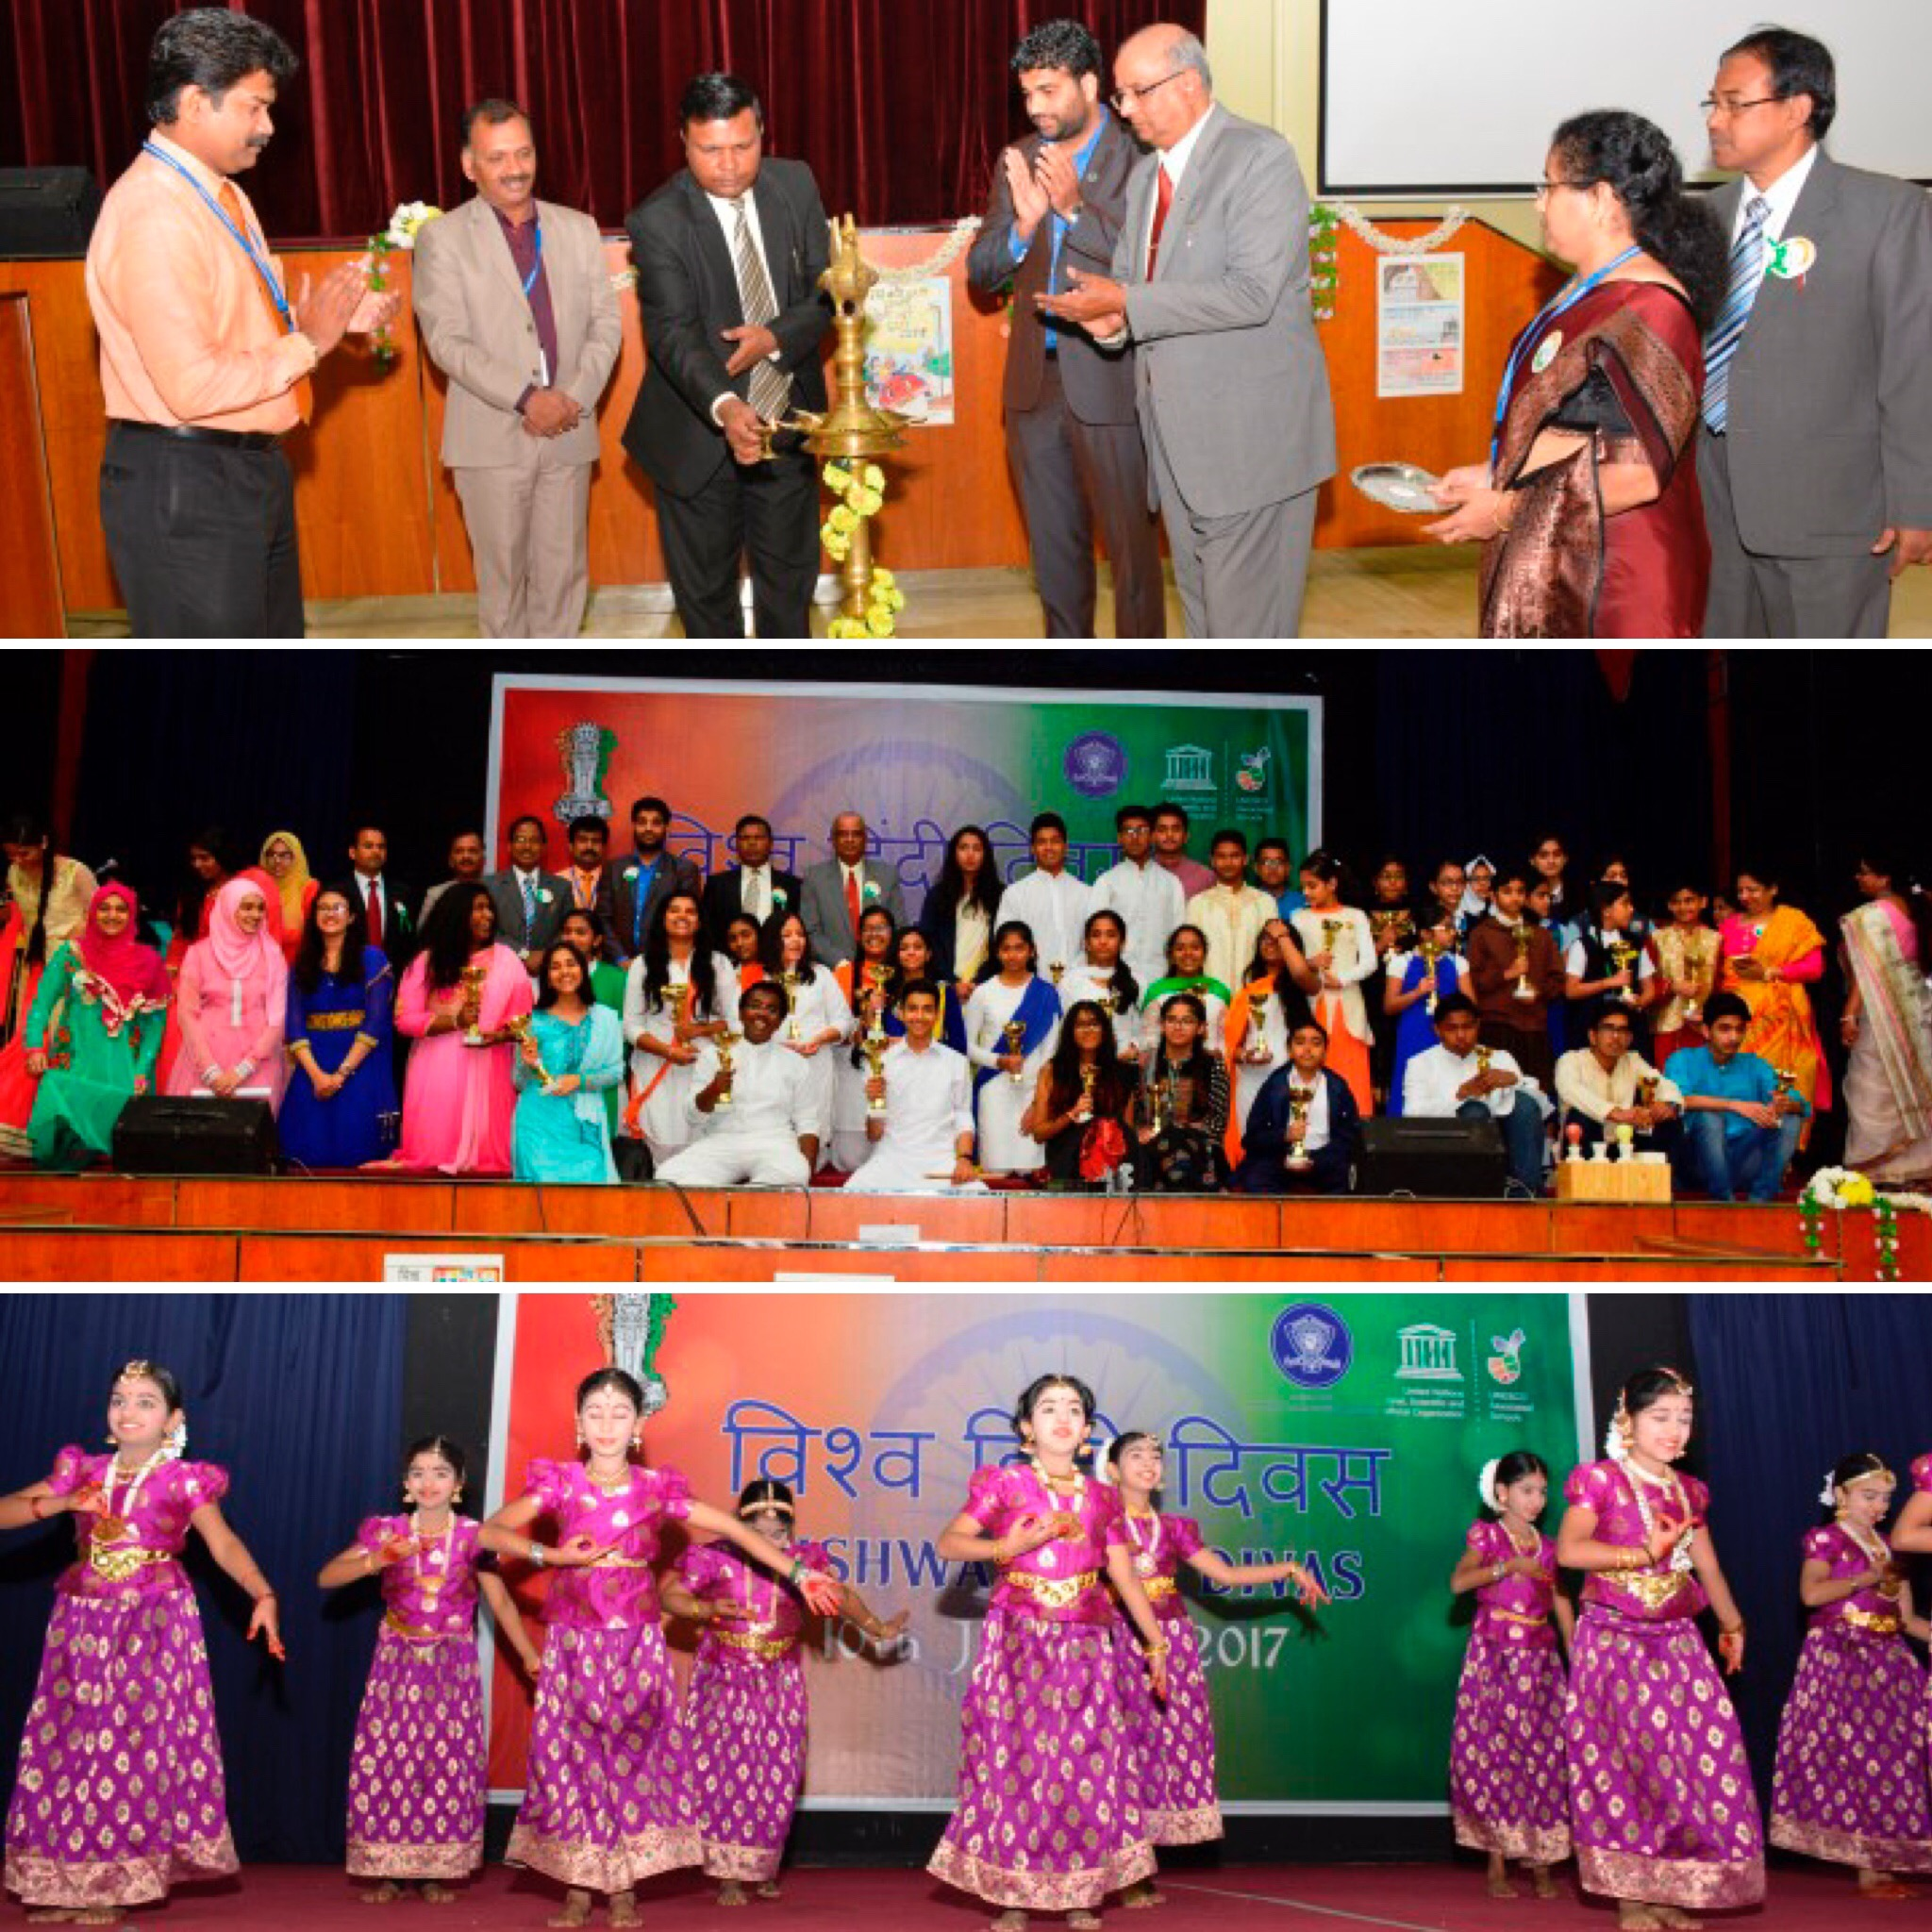 Viswa Hindi Divas celebrated at the Indian School